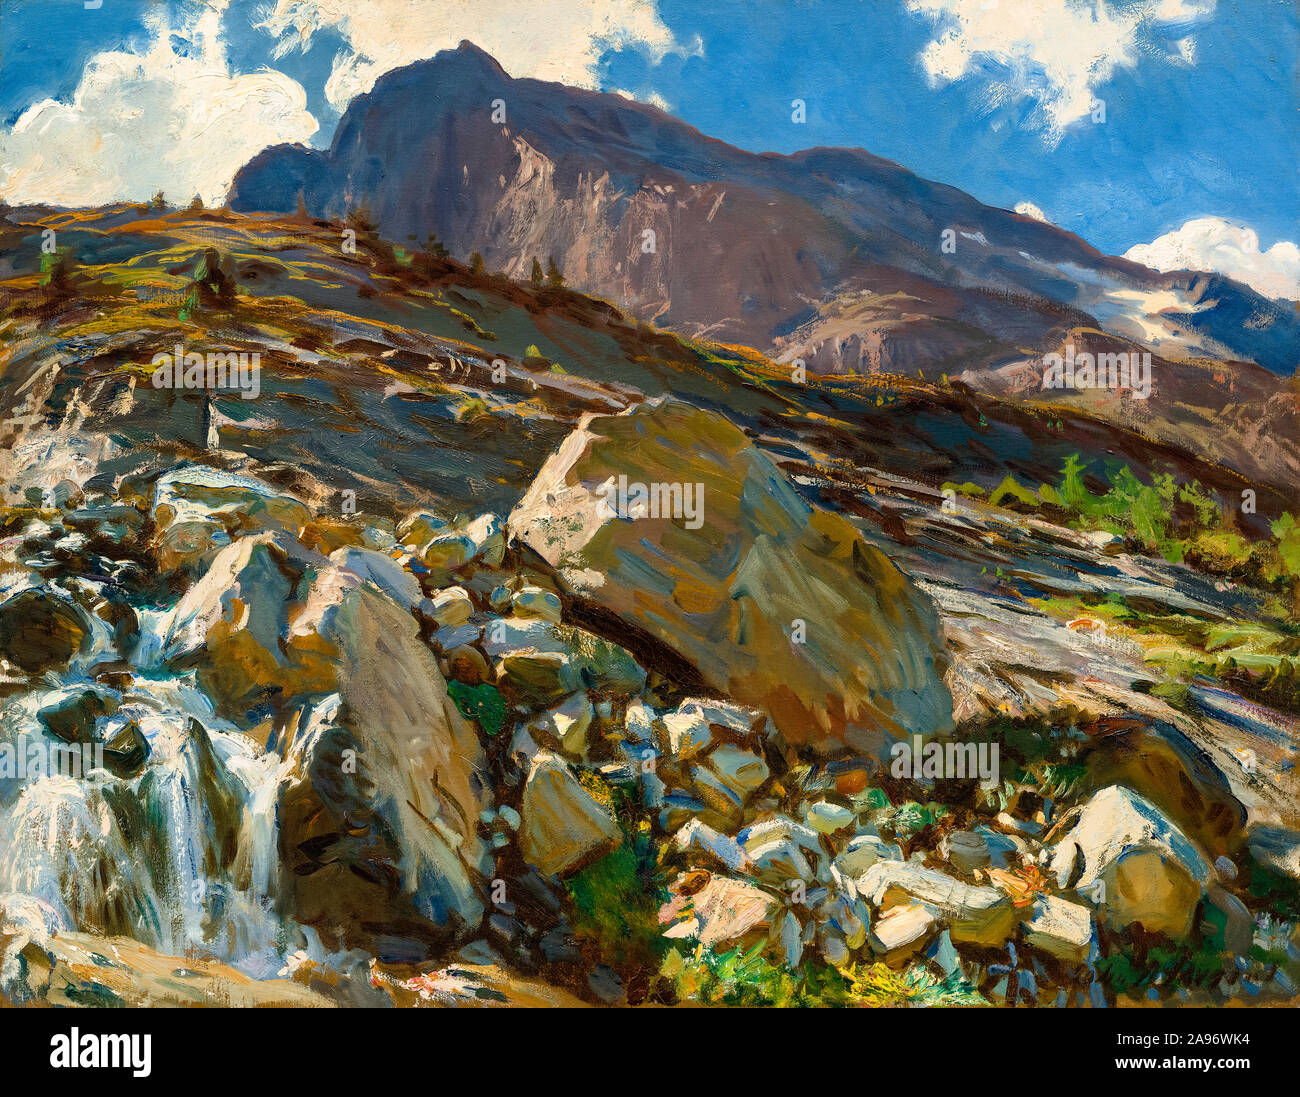 John Singer Sargent, Simplon Pass, landscape painting, 1911 Stock Photo